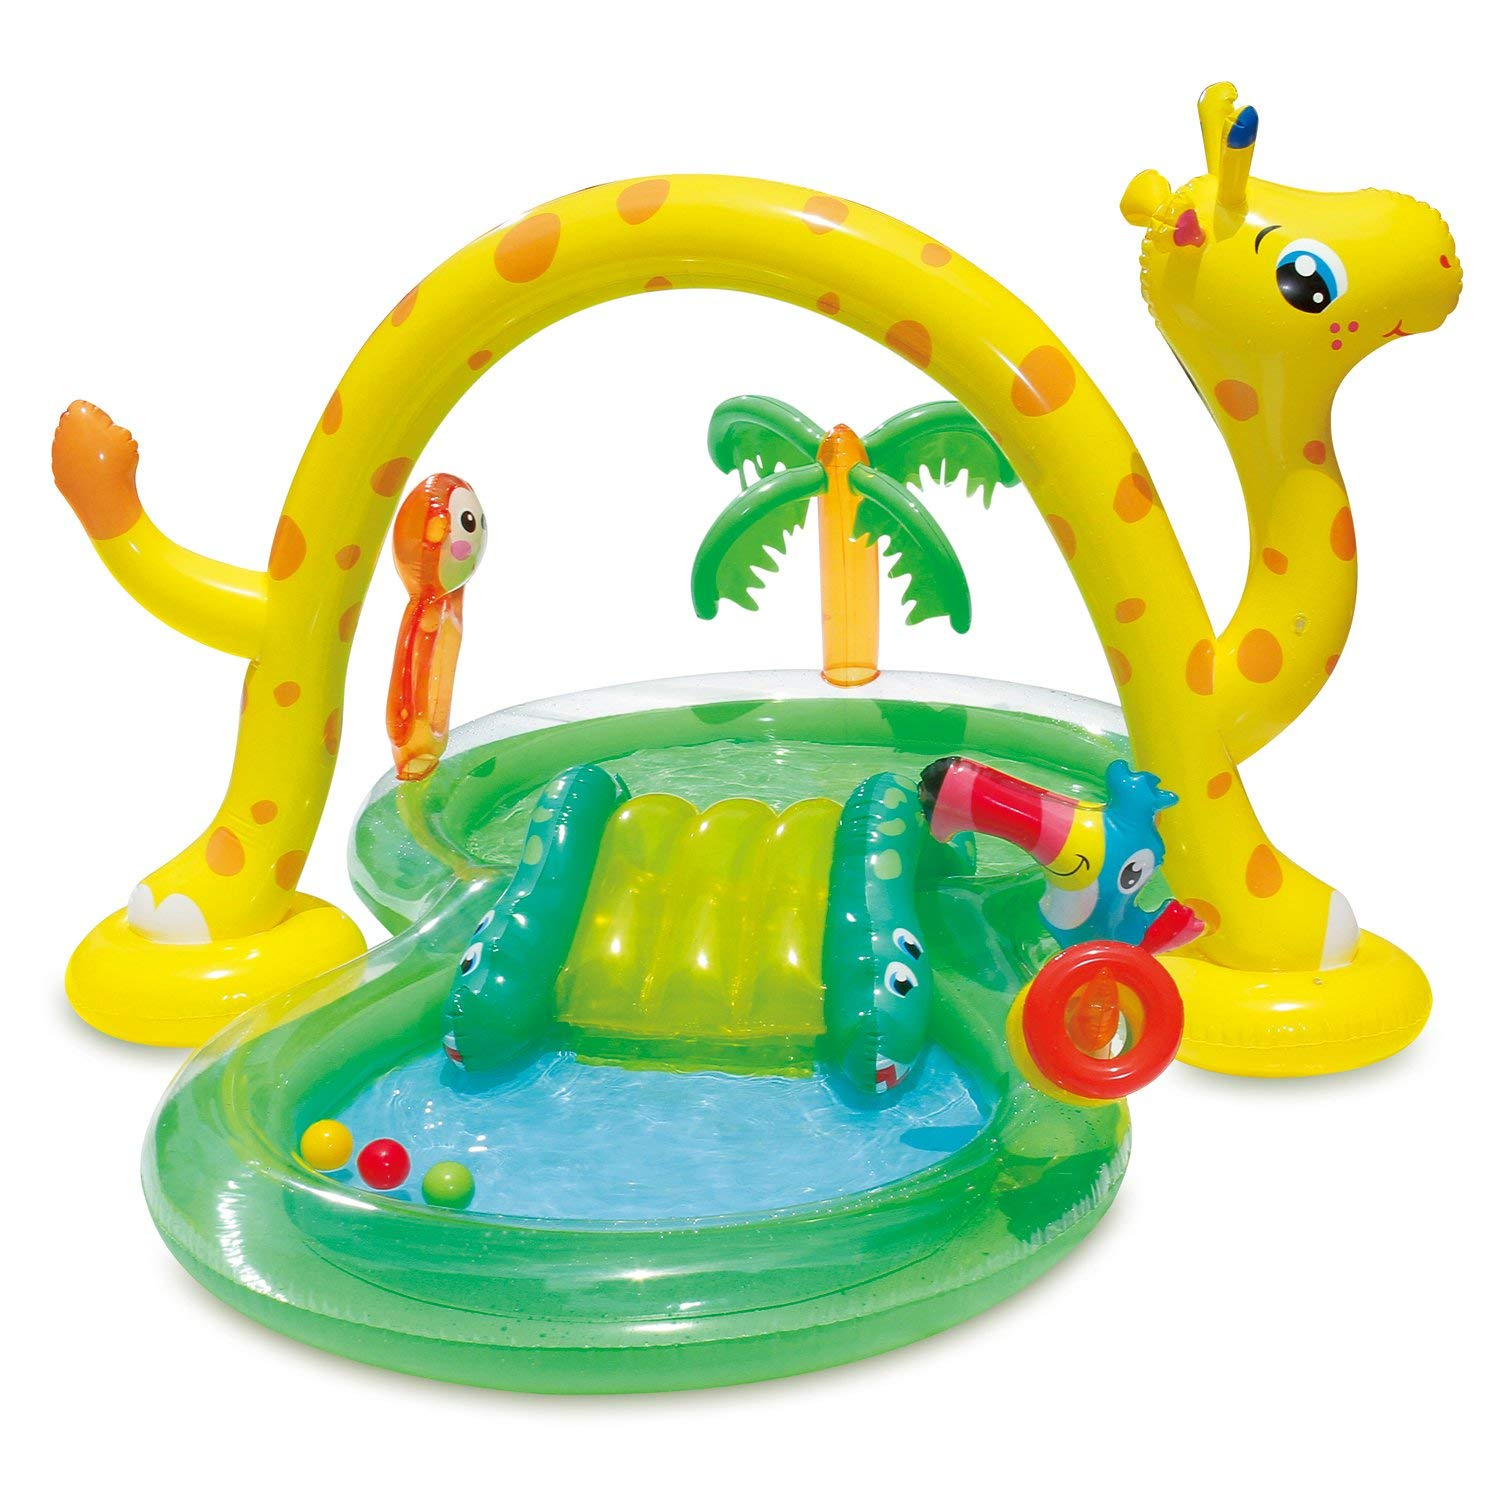 Summer Waves 8.5ft x 6.3ft x 50in Inflatable Jungle Animal Kiddie Swimming Pool Play Center w/Slide by Summer Waves